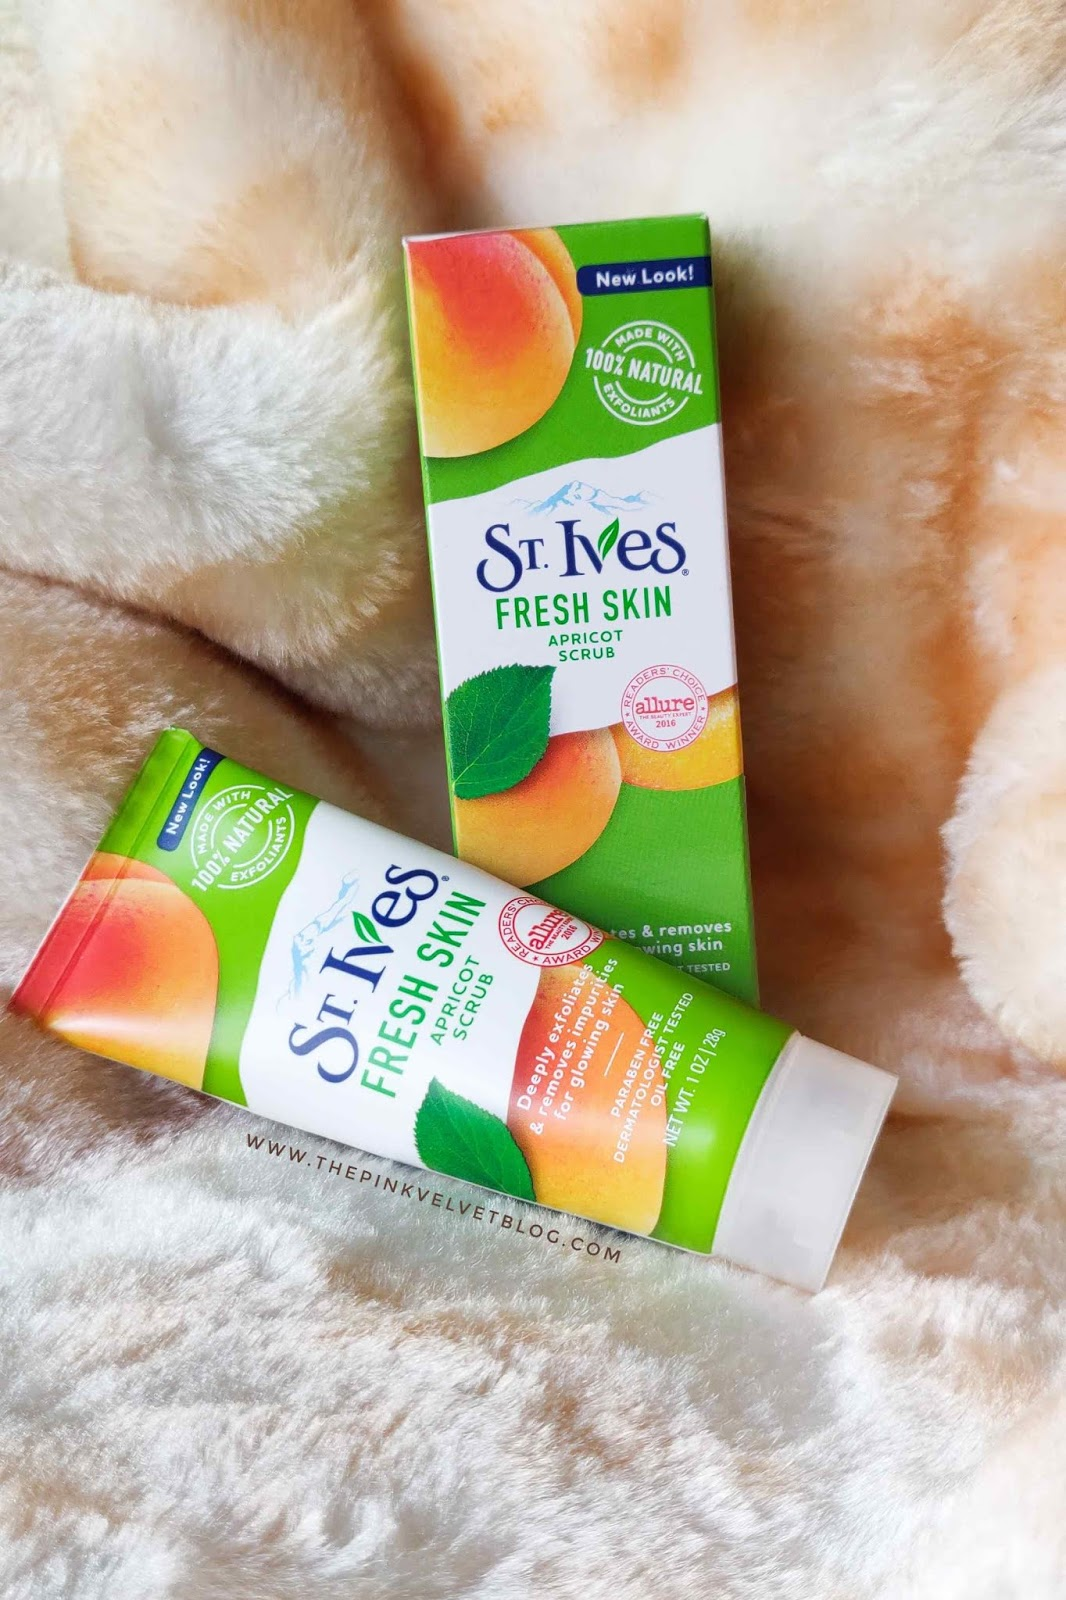 St.Ives Fresh Skin Apricot Face Scrub - Review